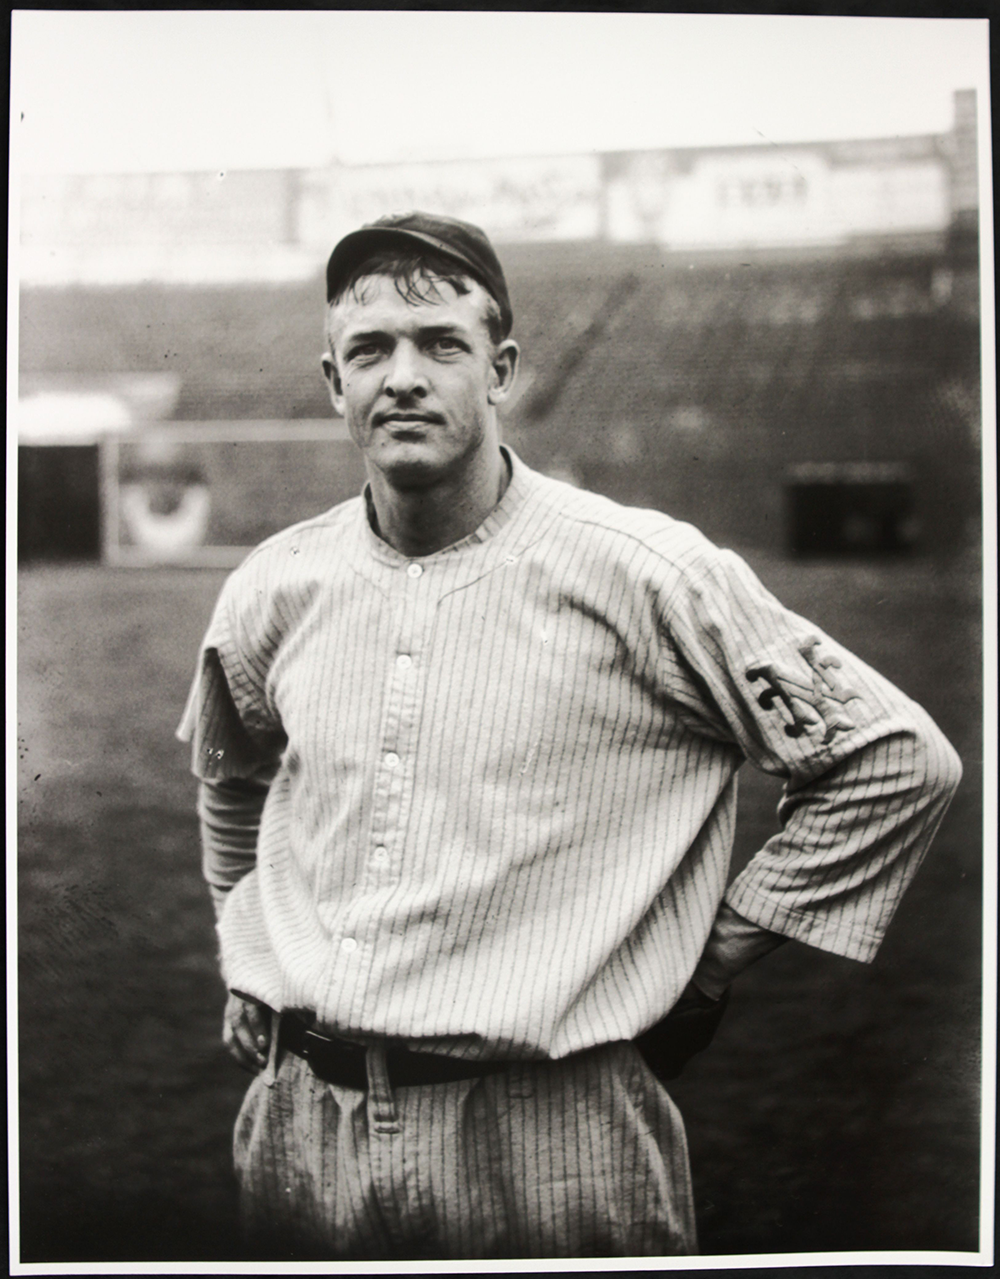 New York Giant Christy Mathewson, 1912, the year he published Pitching in a Pinch. Photograph by Charles Martin Conlon.